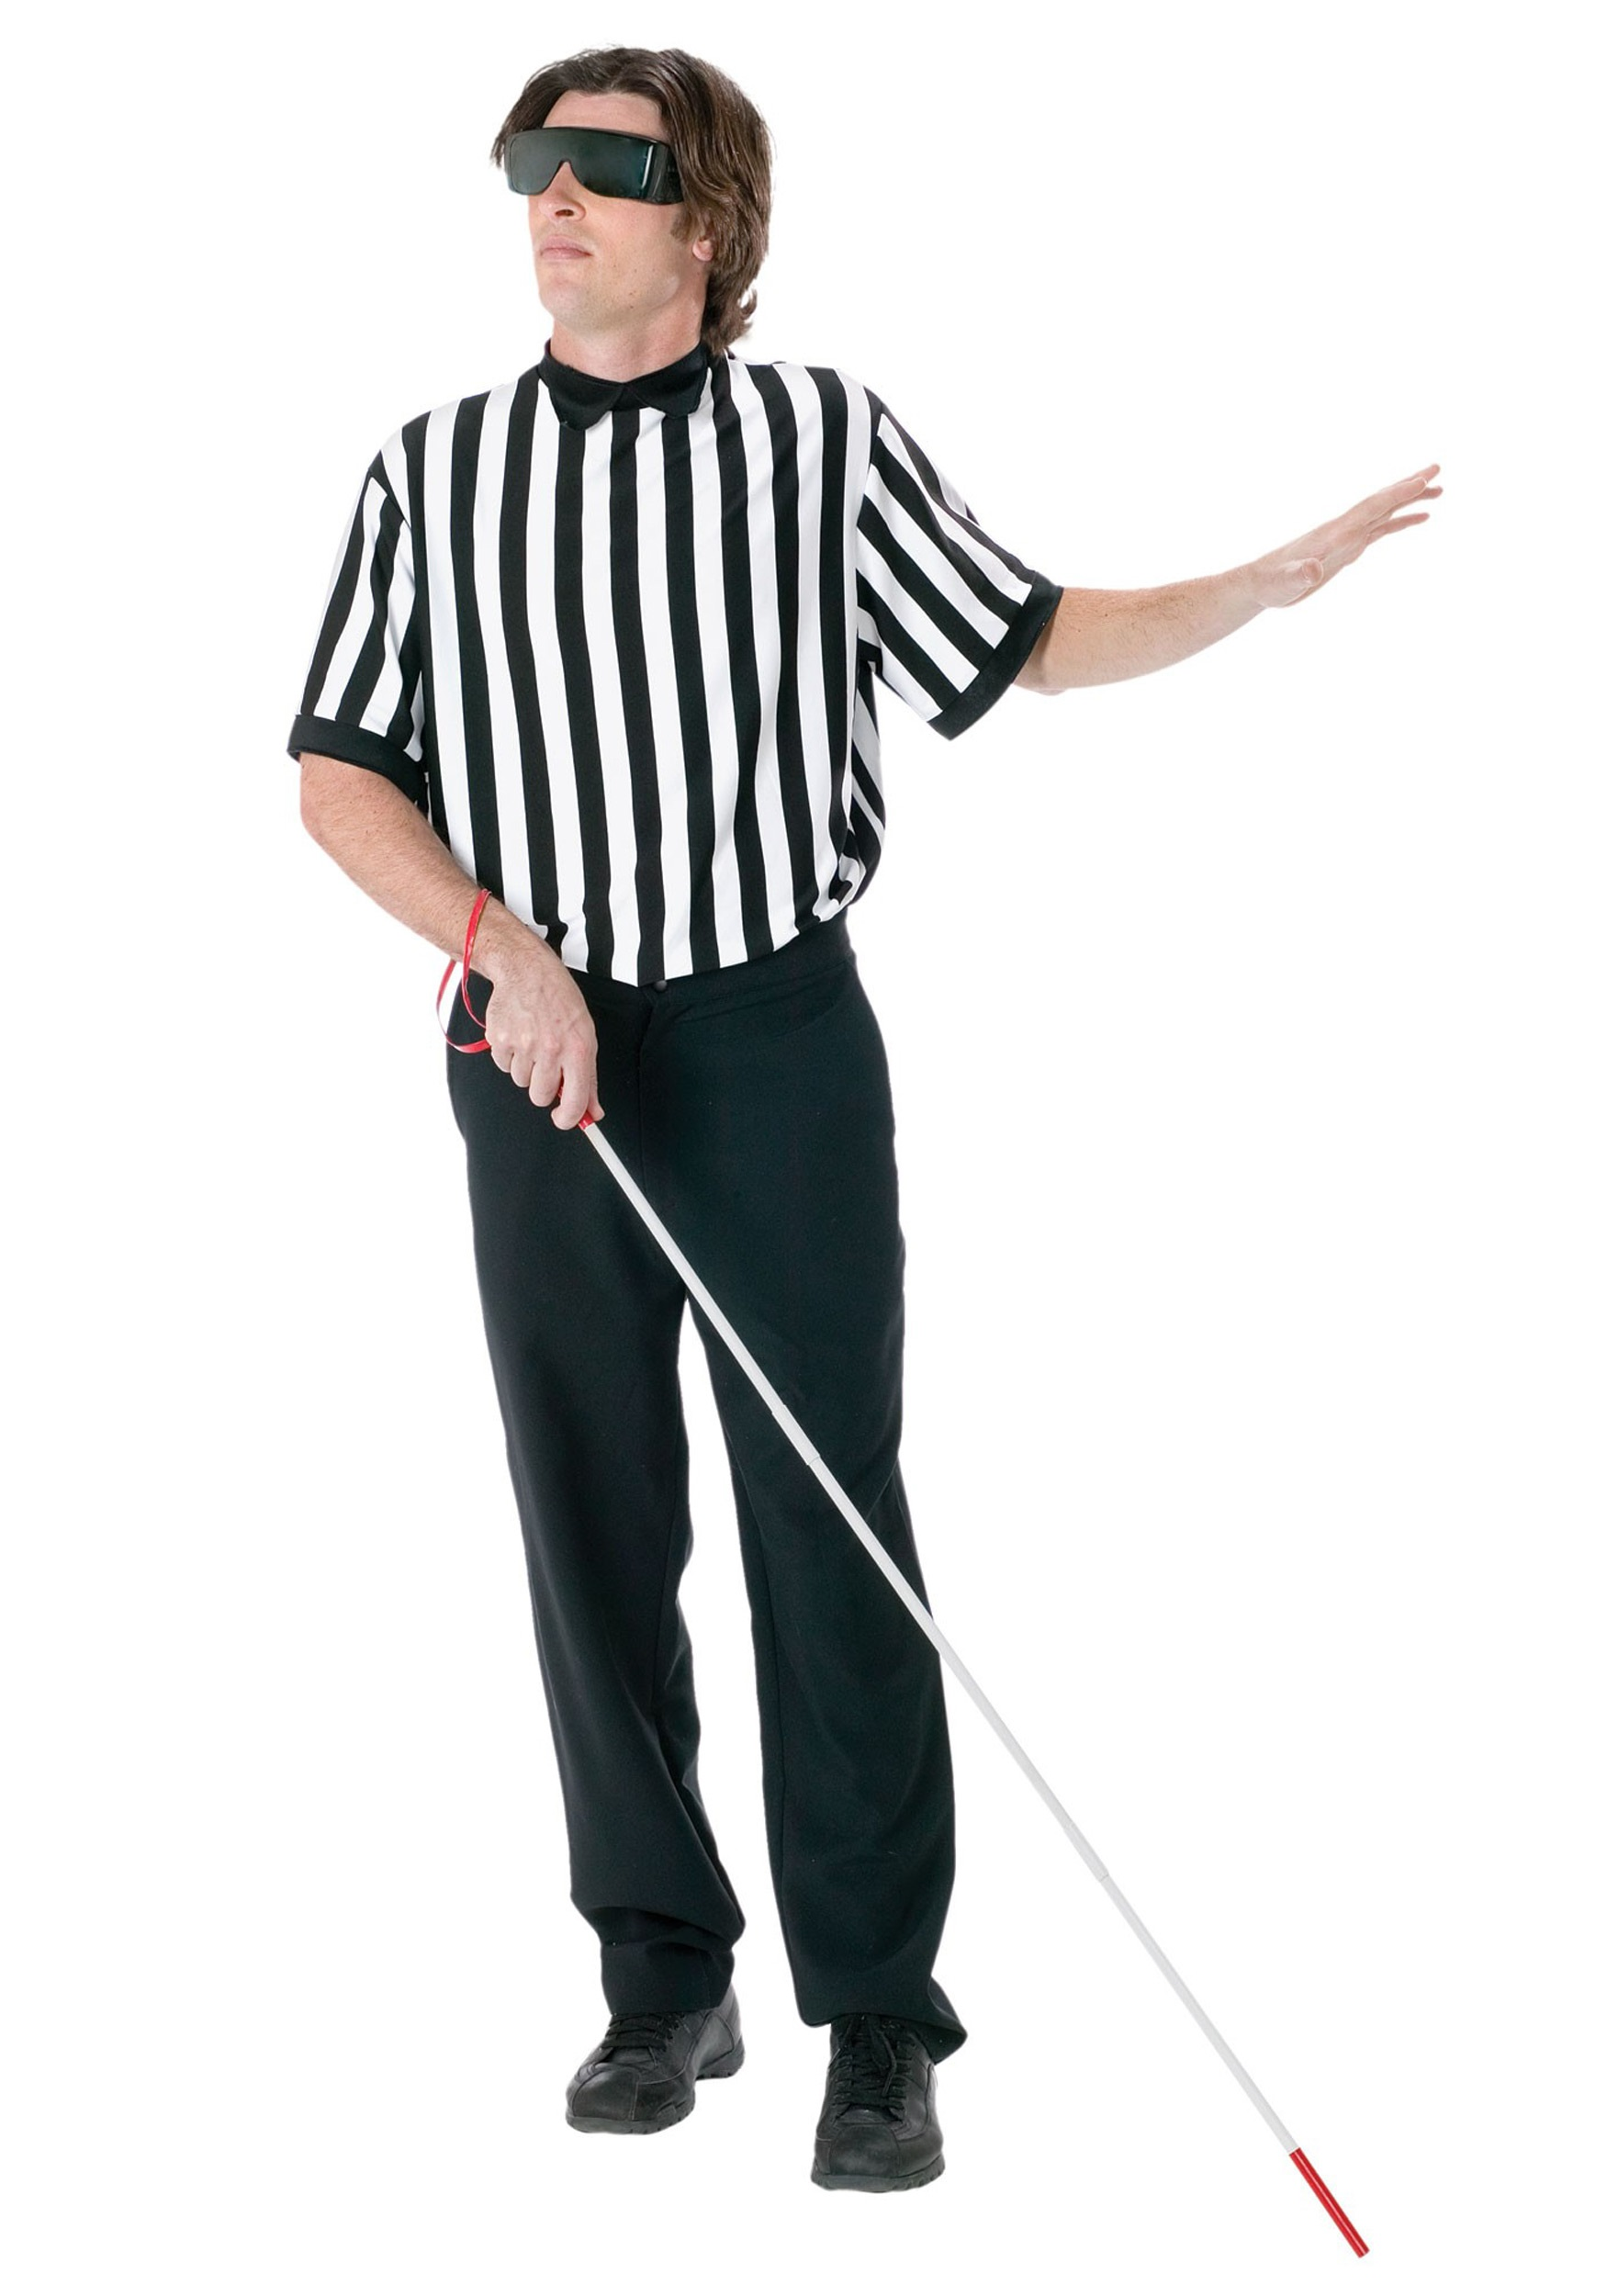 sc 1 st  Halloween Costumes & Blind Referee Costume